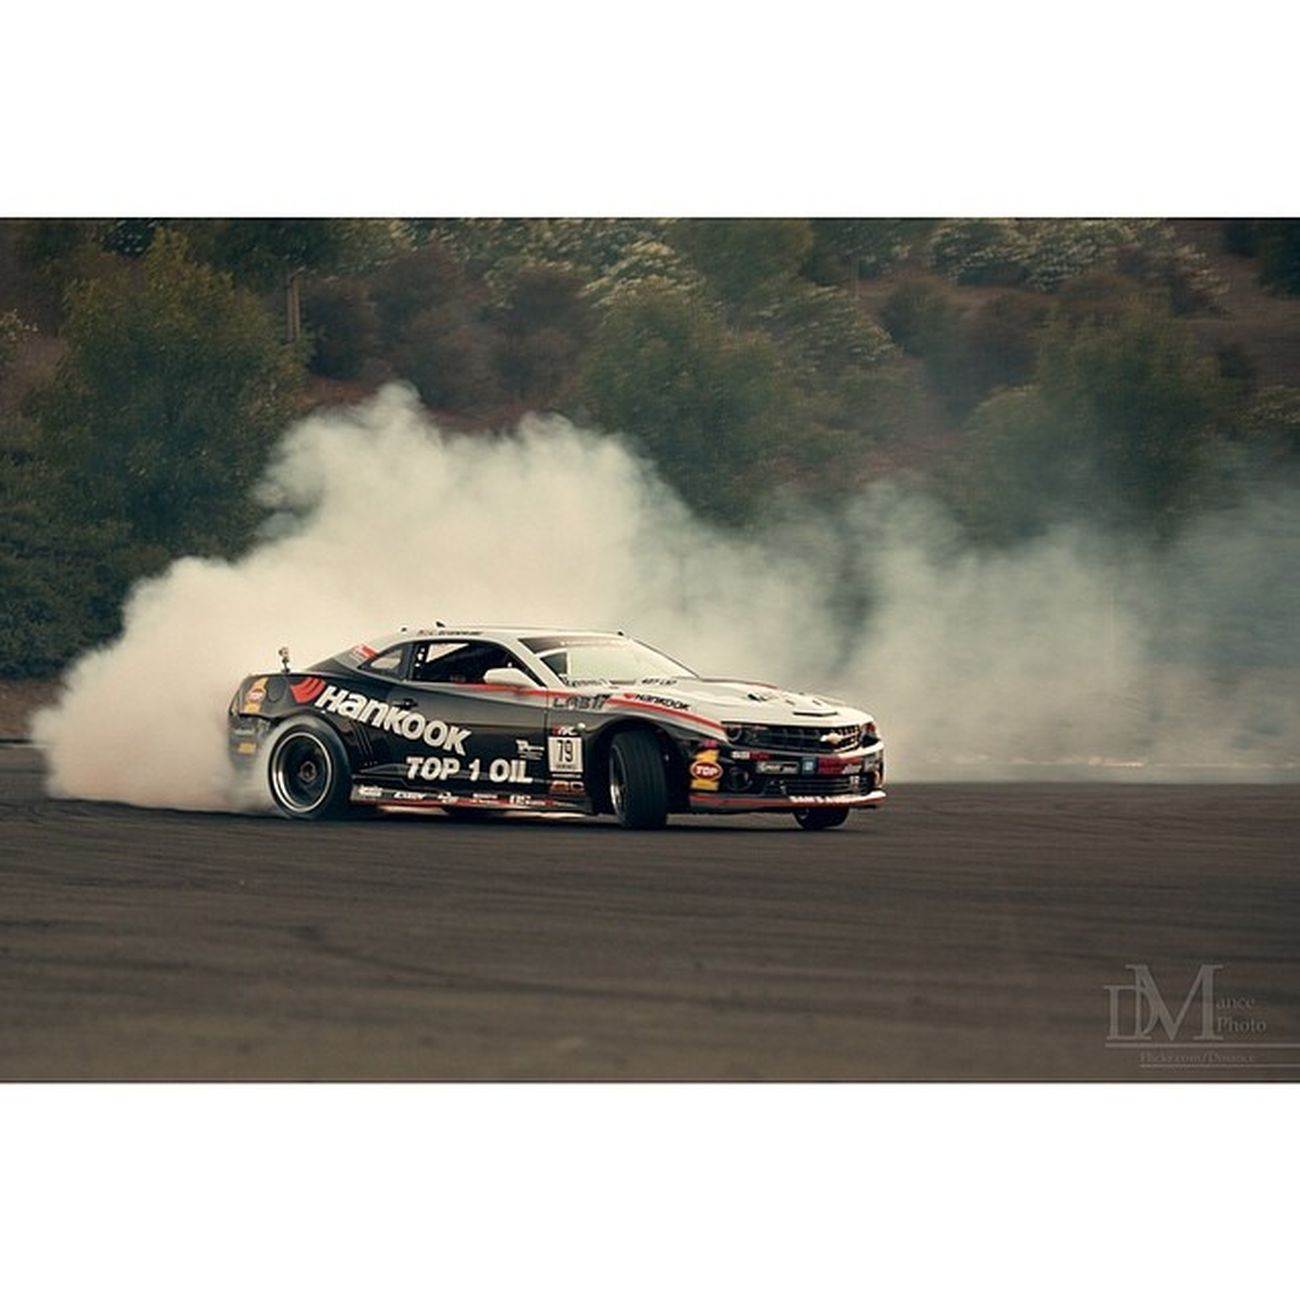 TBT  to Wednesday nights at Sonomadrift really miss shooting drifting!